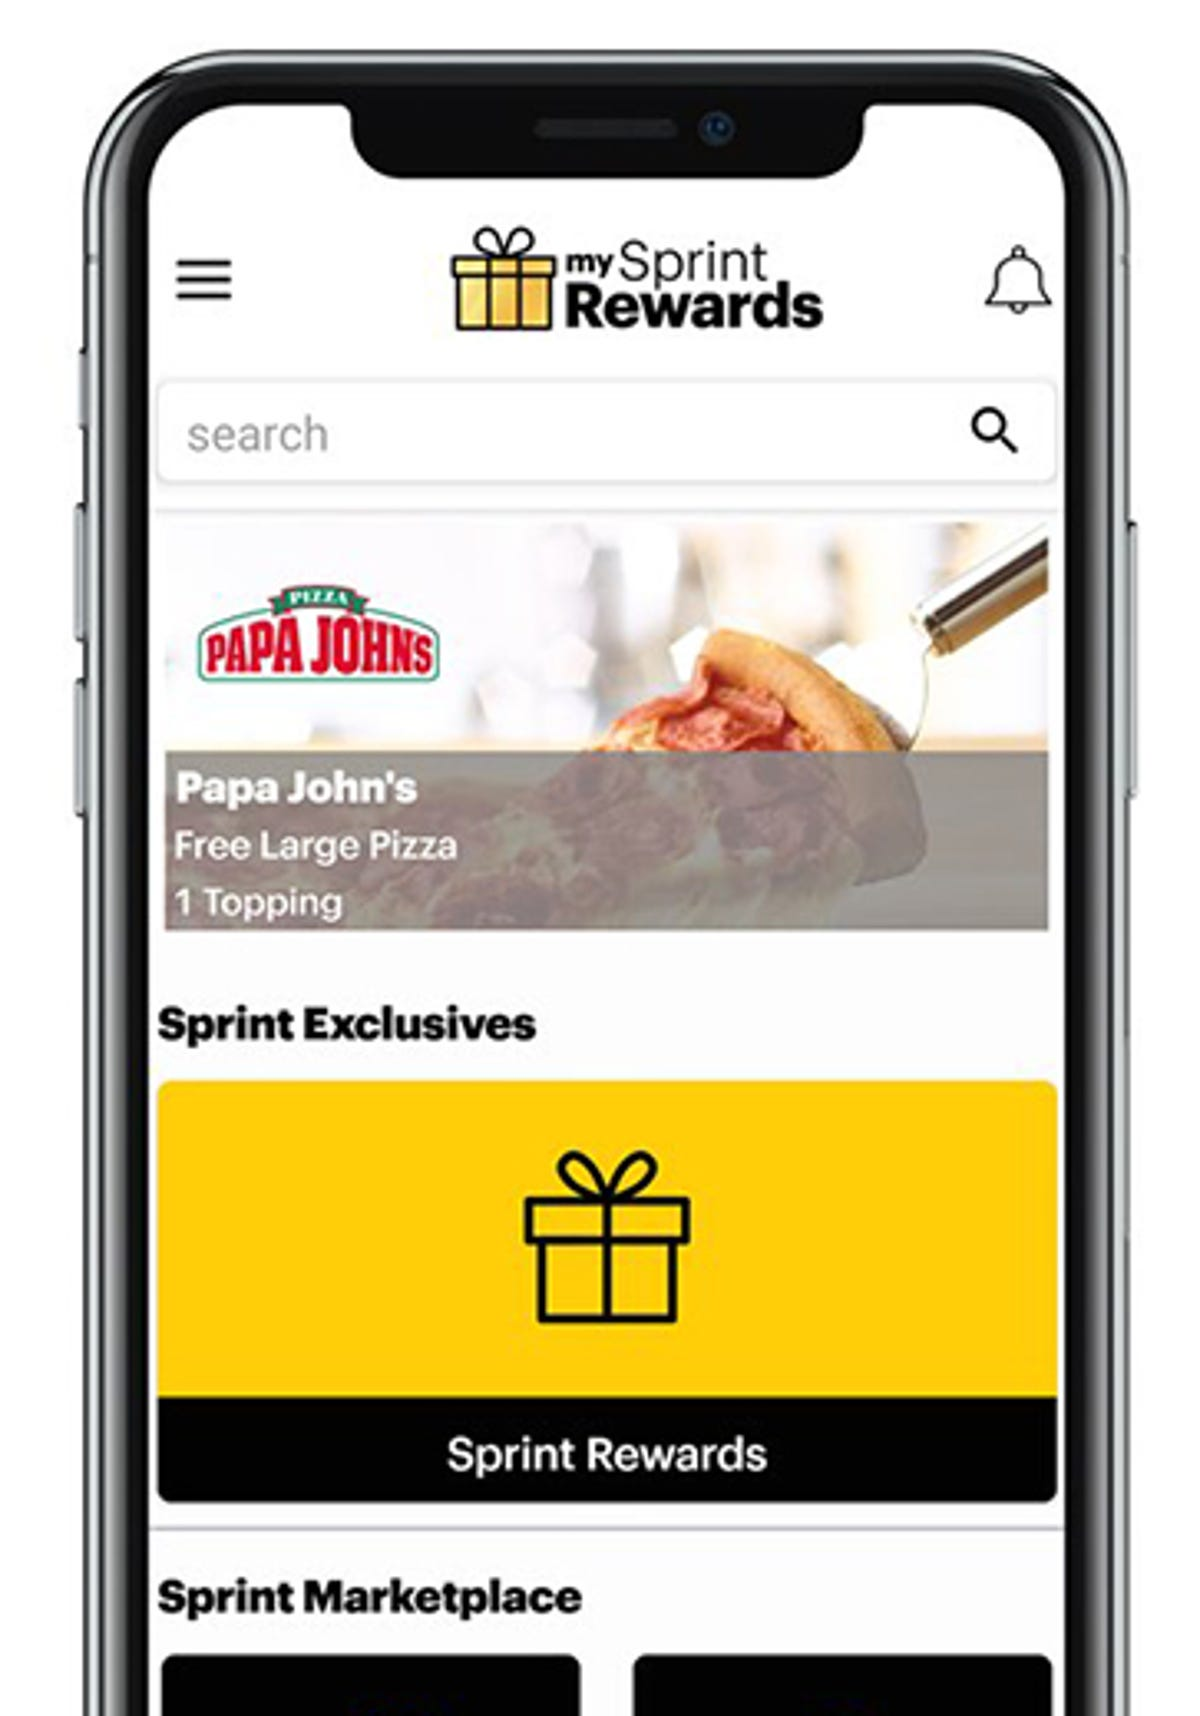 Sprint's new rewards program is latest bid to rival other carriers